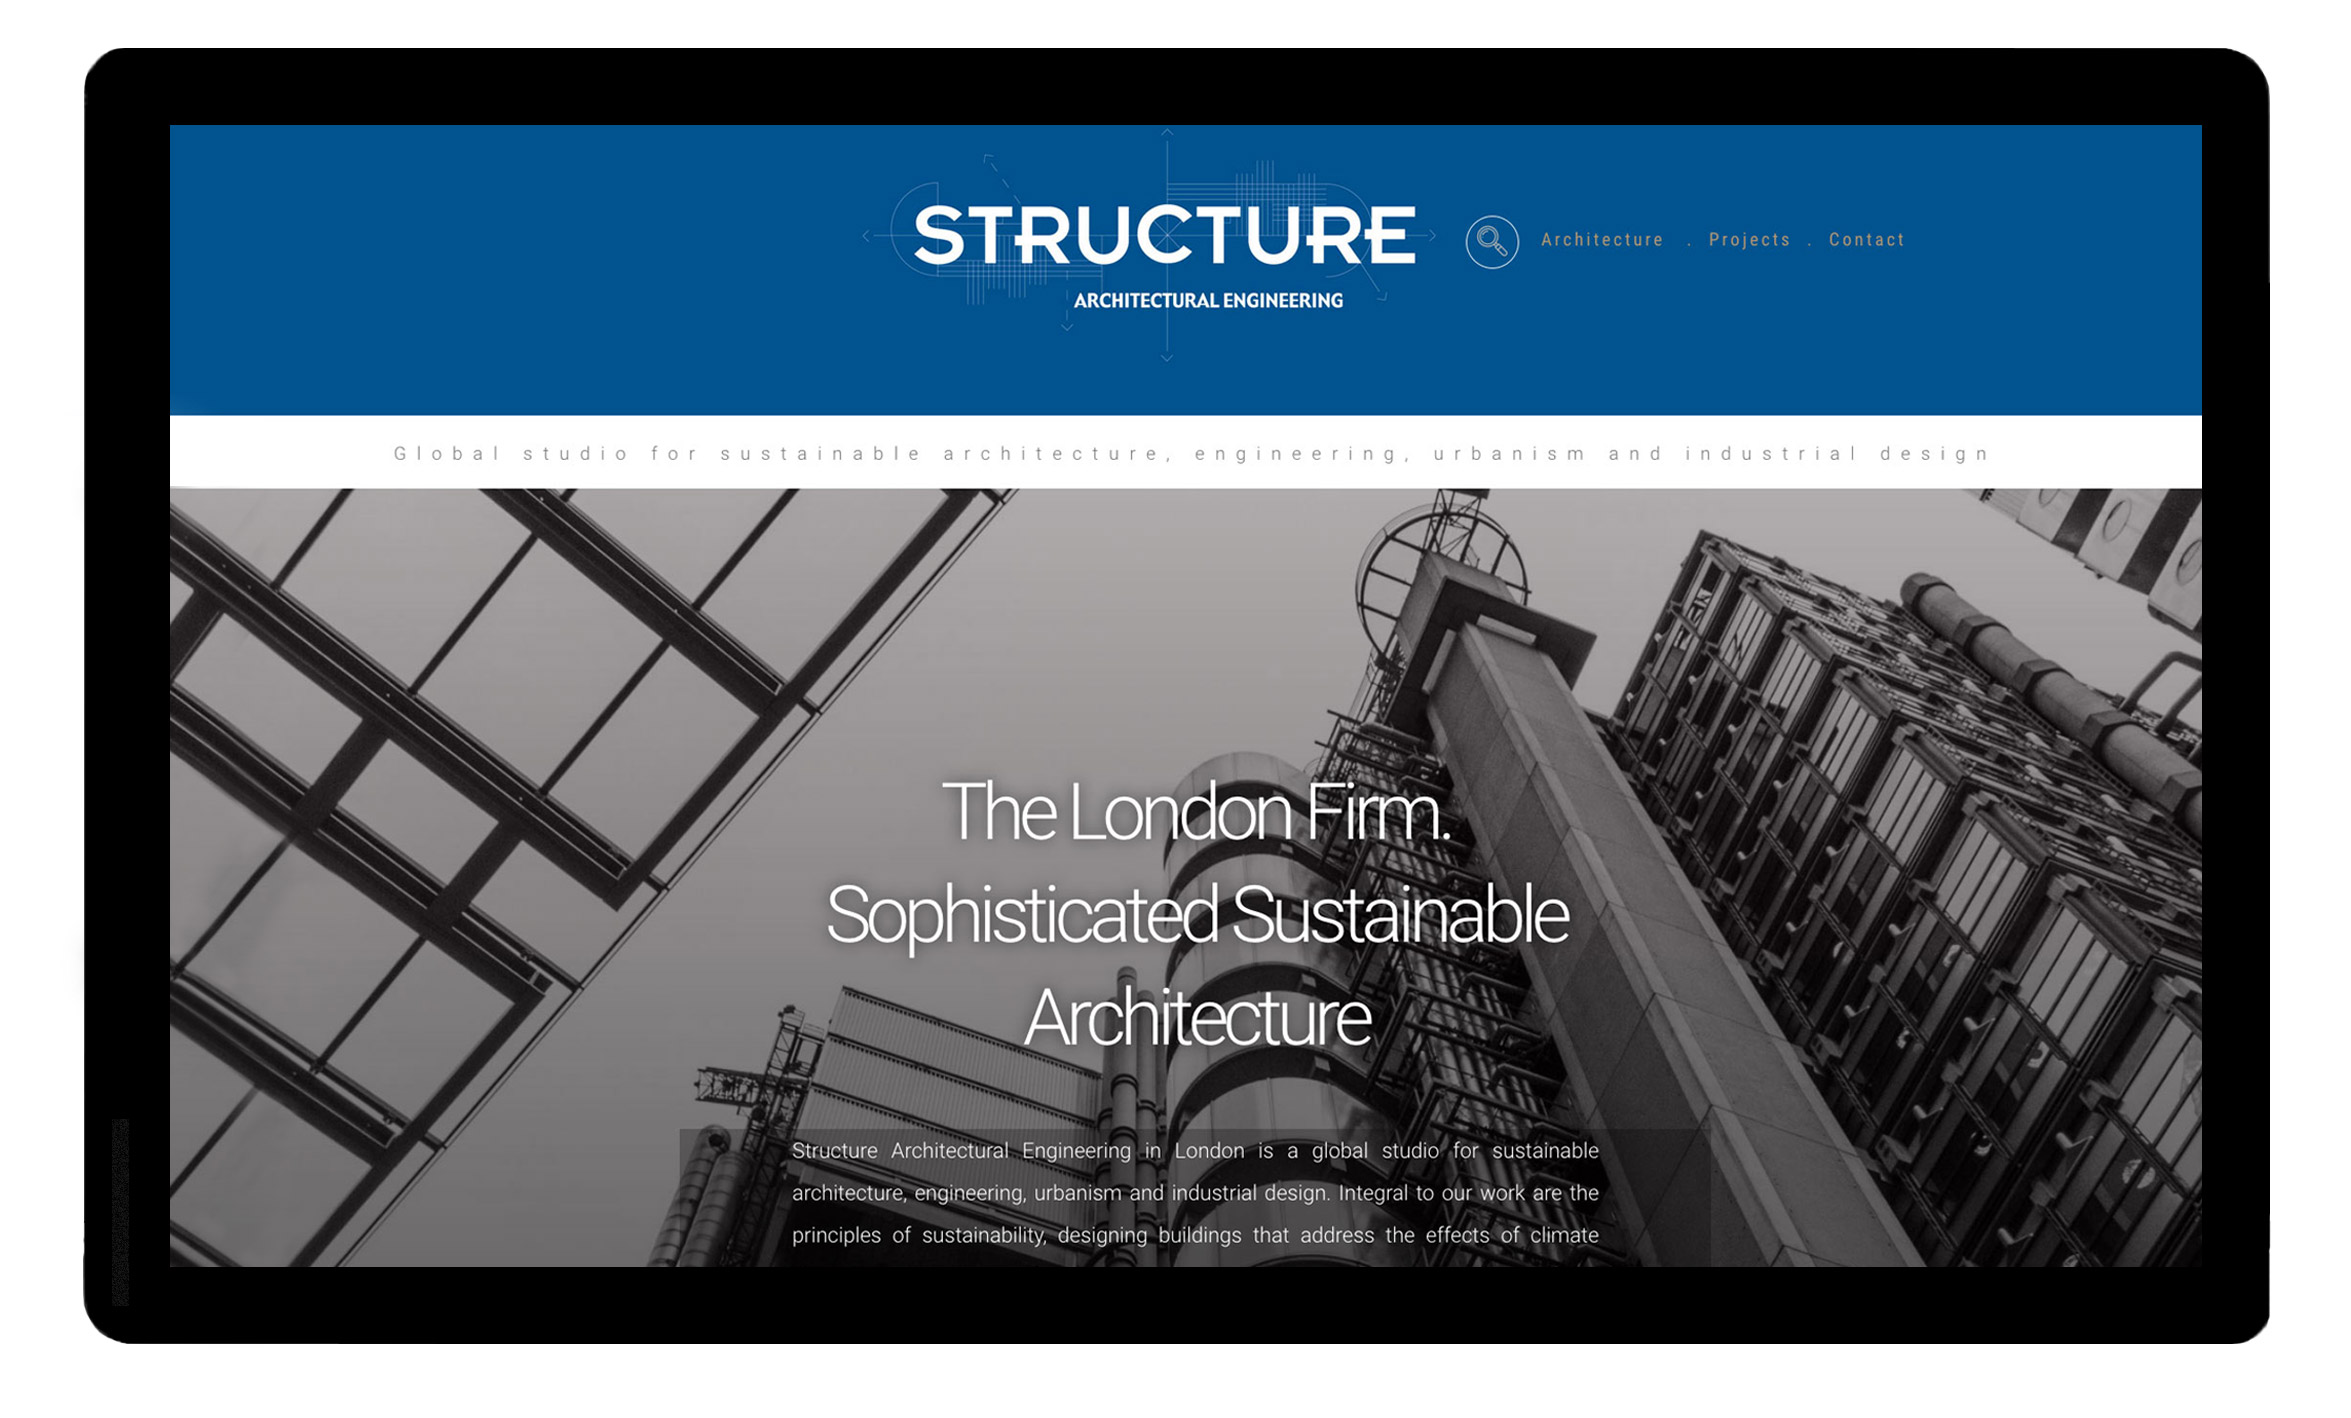 structure-architectural-engineering-firm-website-design-company-framed-web